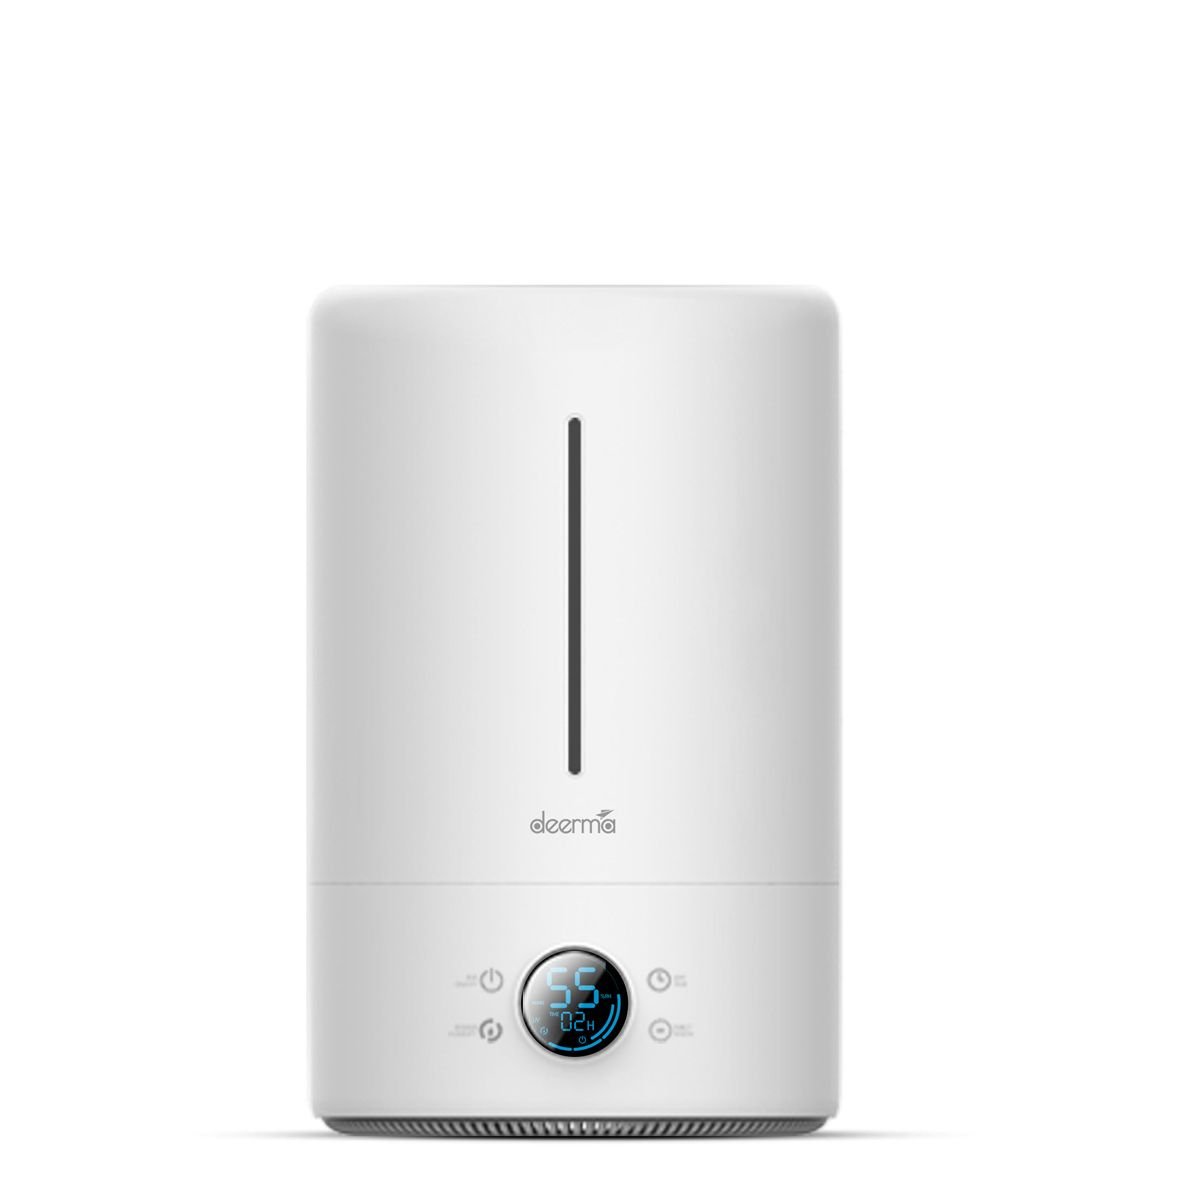 Deerma F628S Smart Humidifier for Home With UV Lamp Sterilization